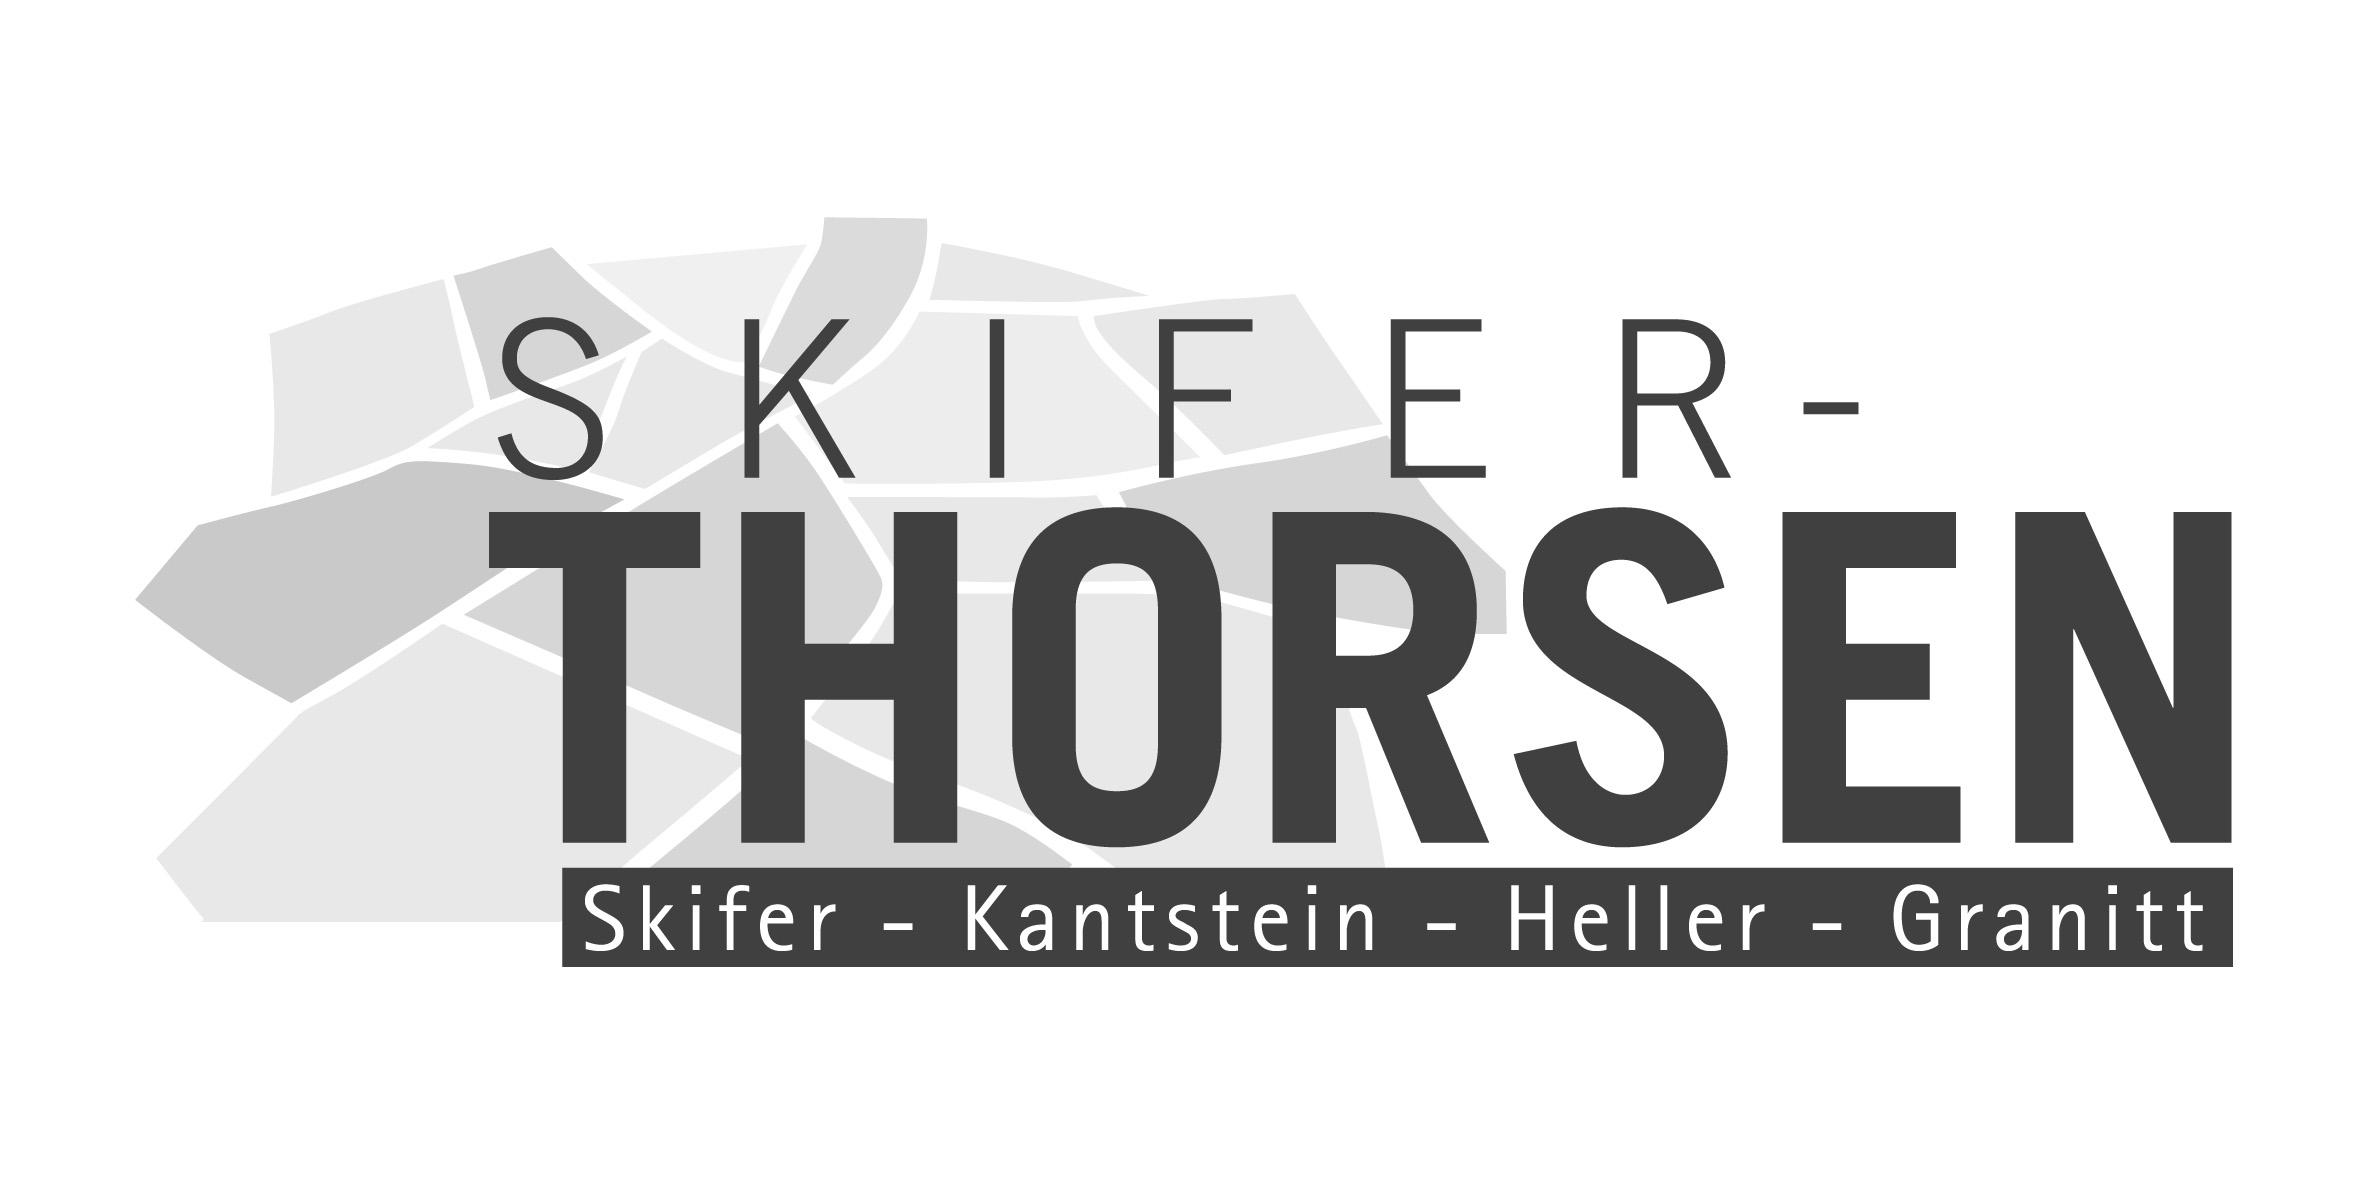 Skifer Thorsen logo